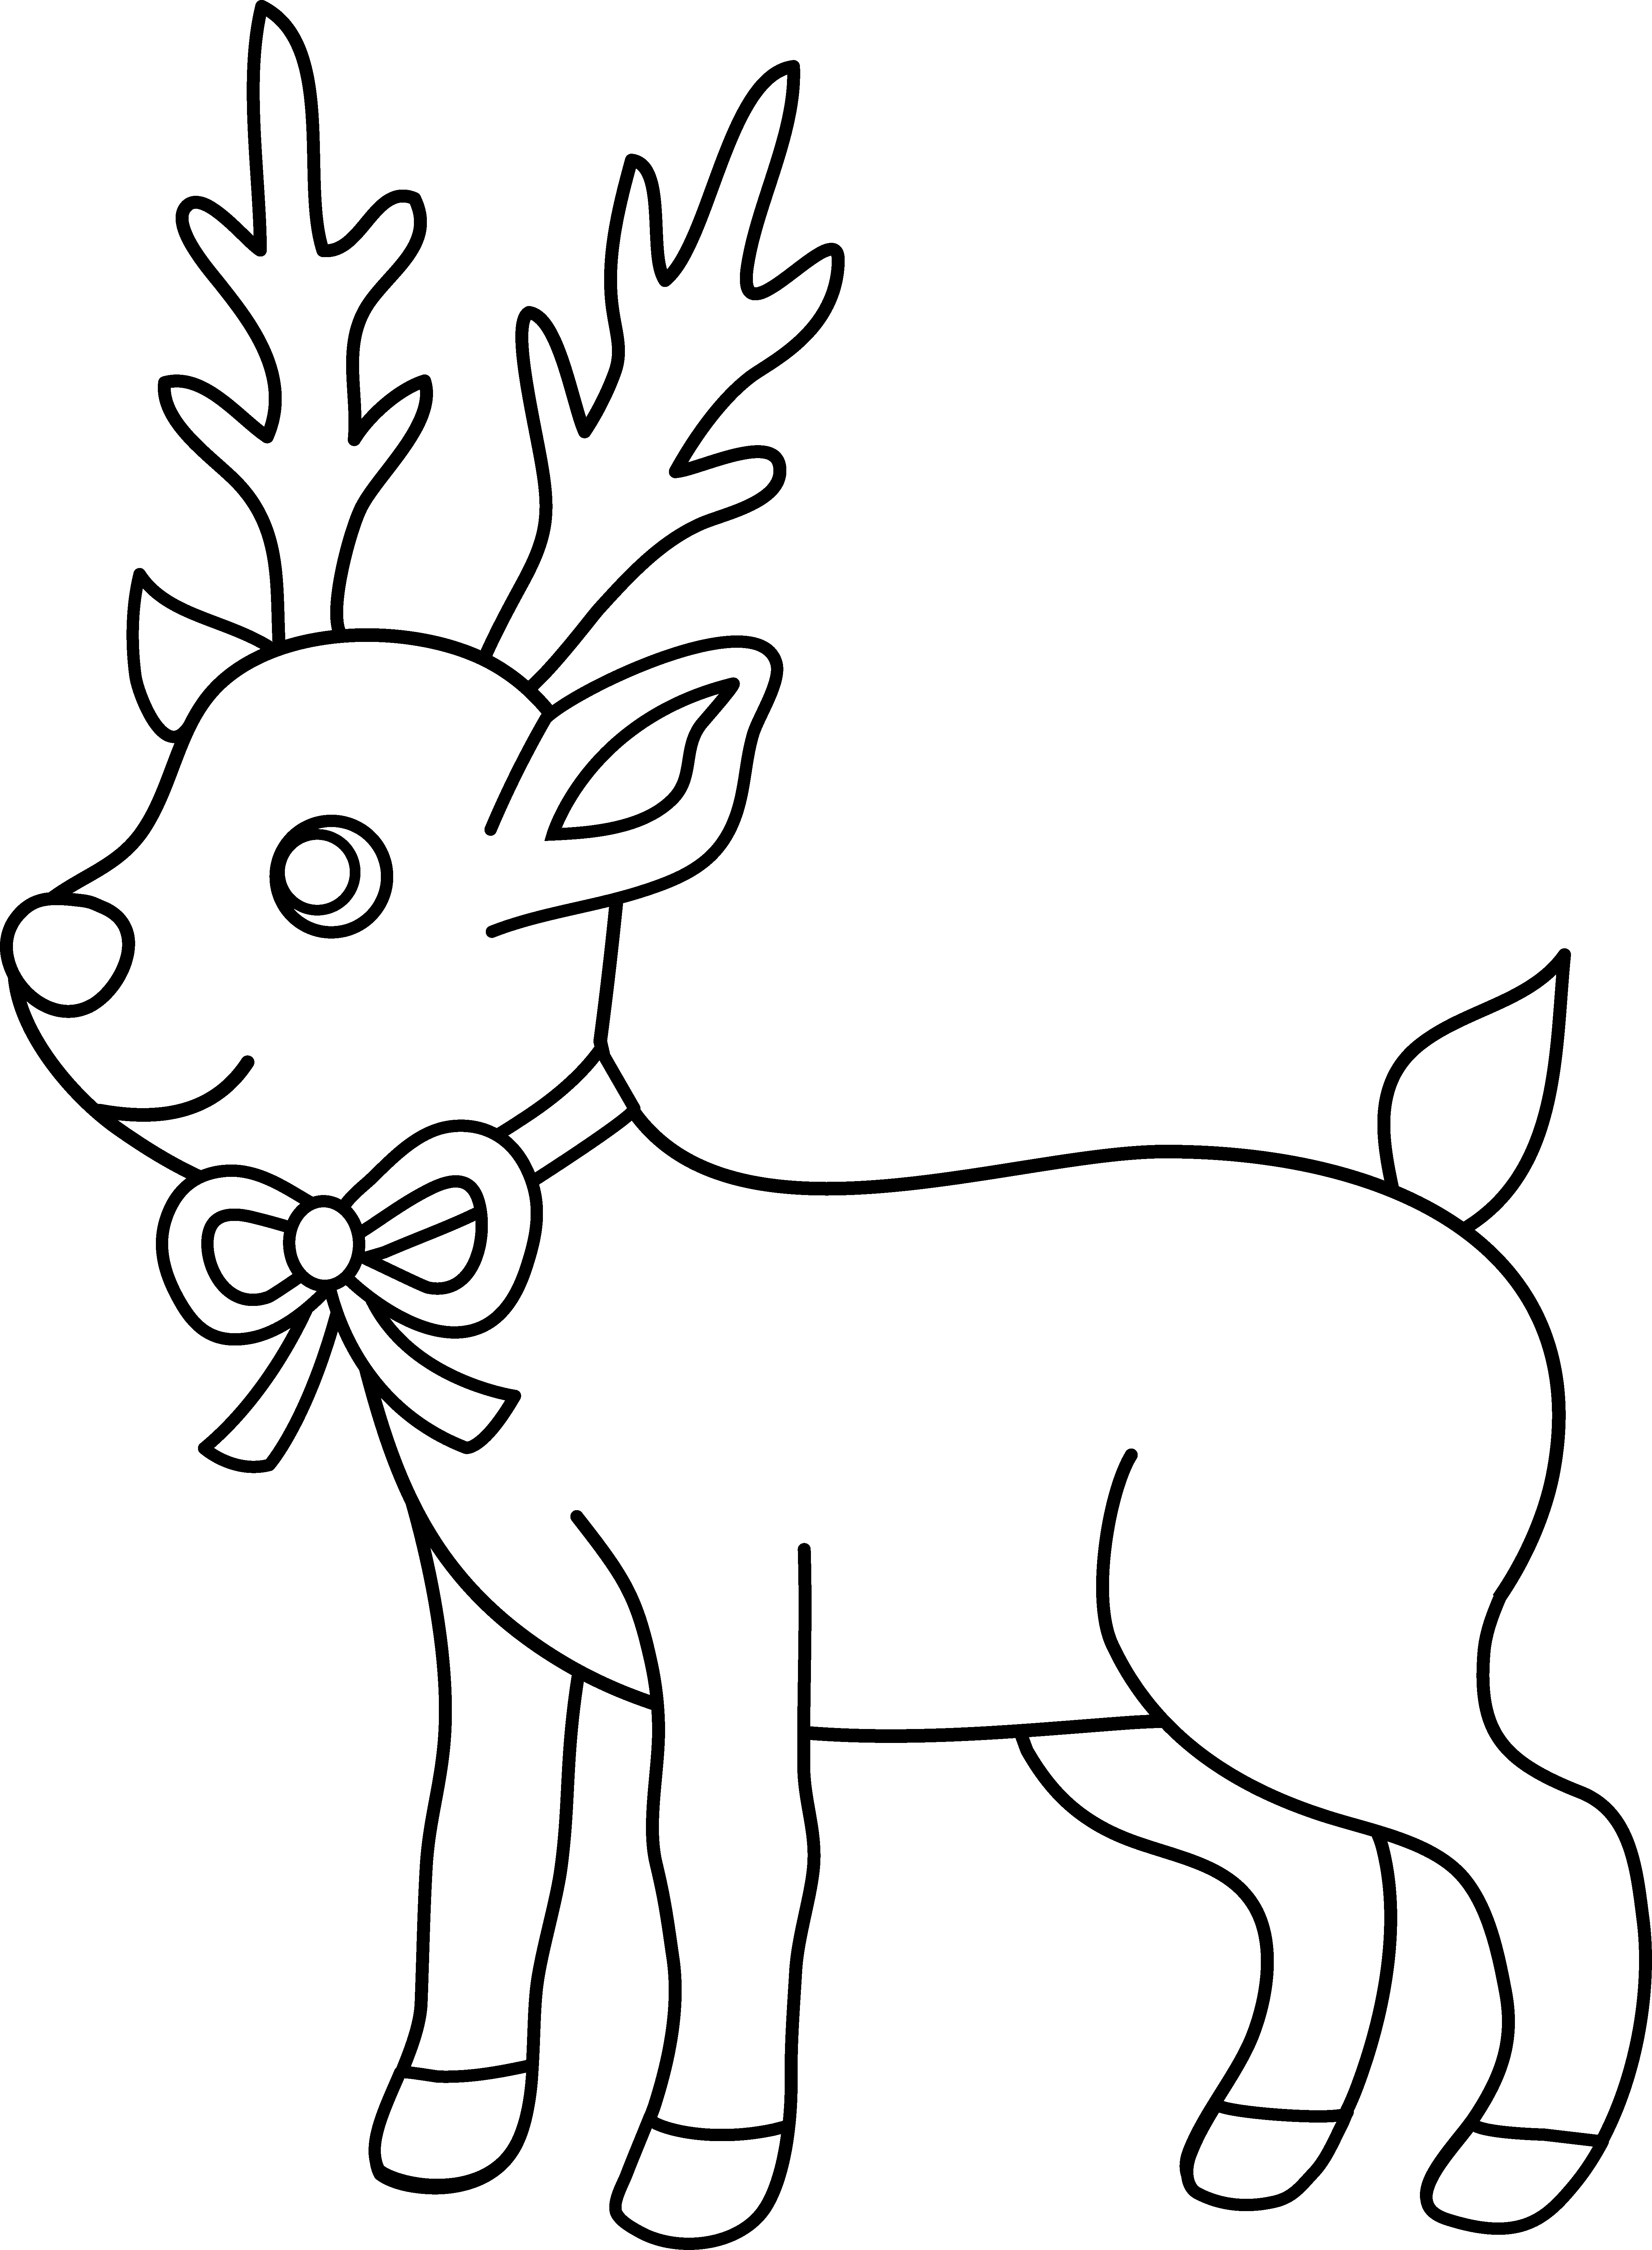 Christmas Reindeer Coloring Pages With Page Free Clip Art Outstanding Clipart